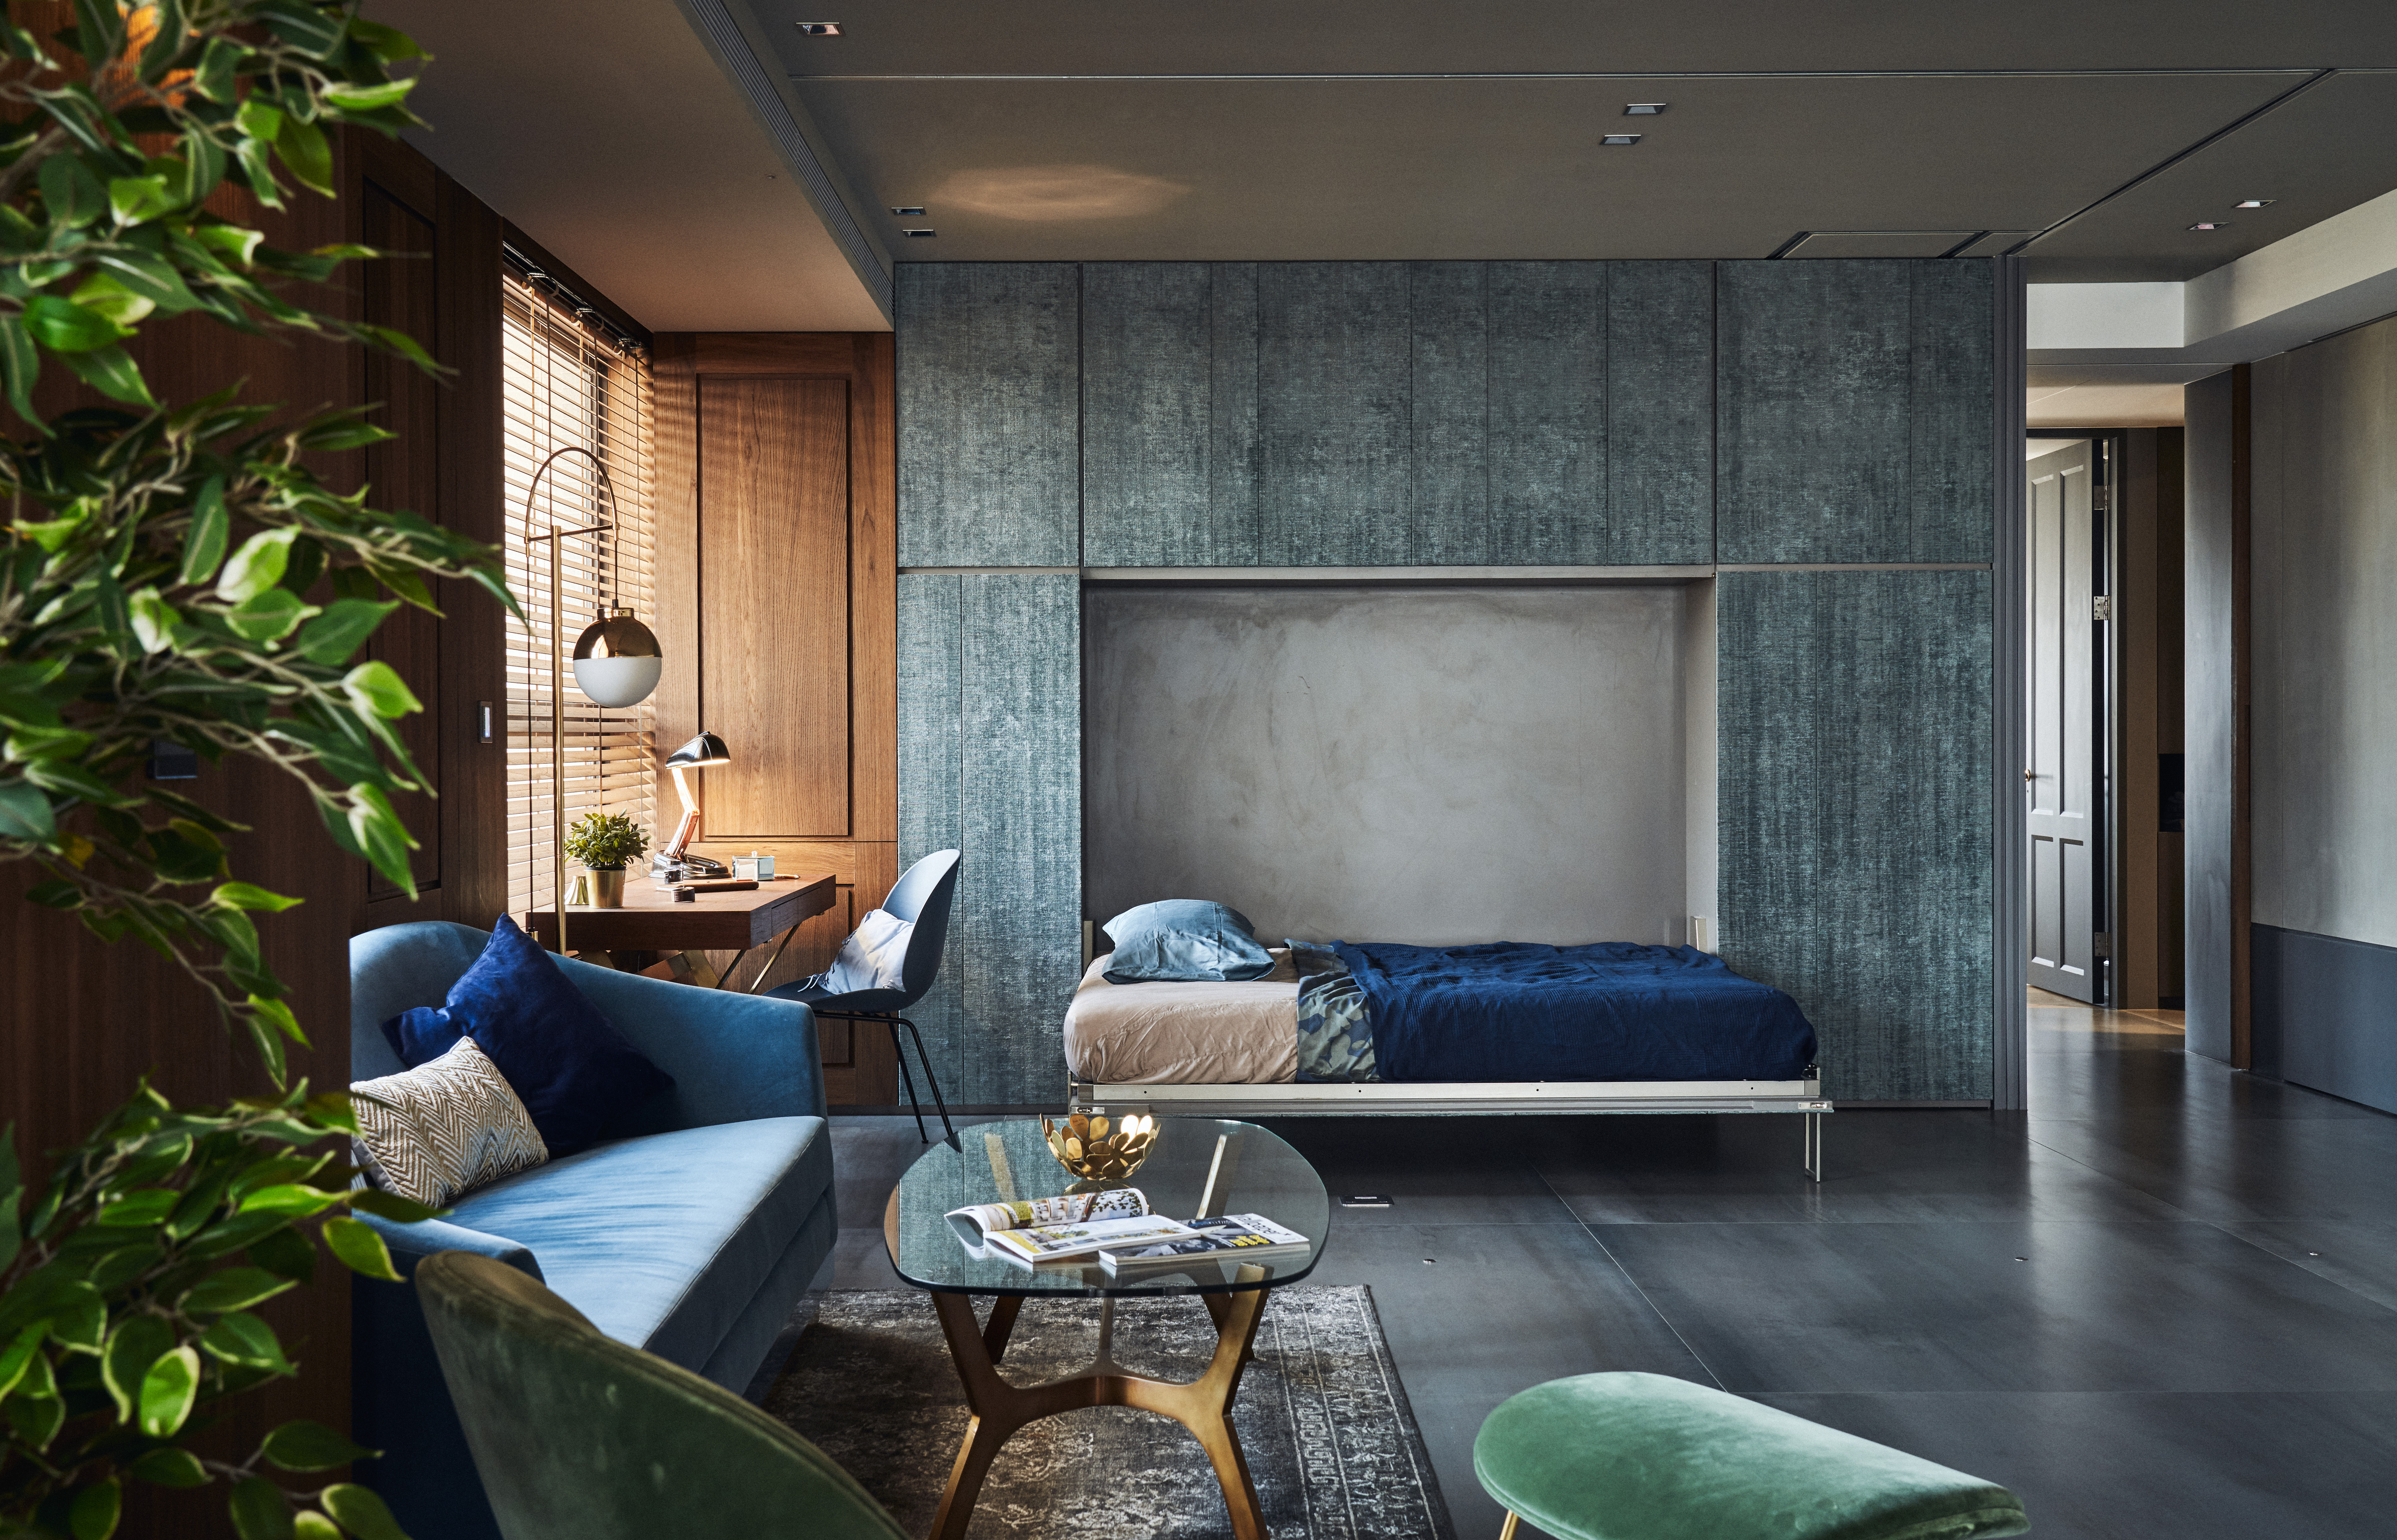 Tour This Urban Home With Luxe, Noir-Like Drama | Hunker